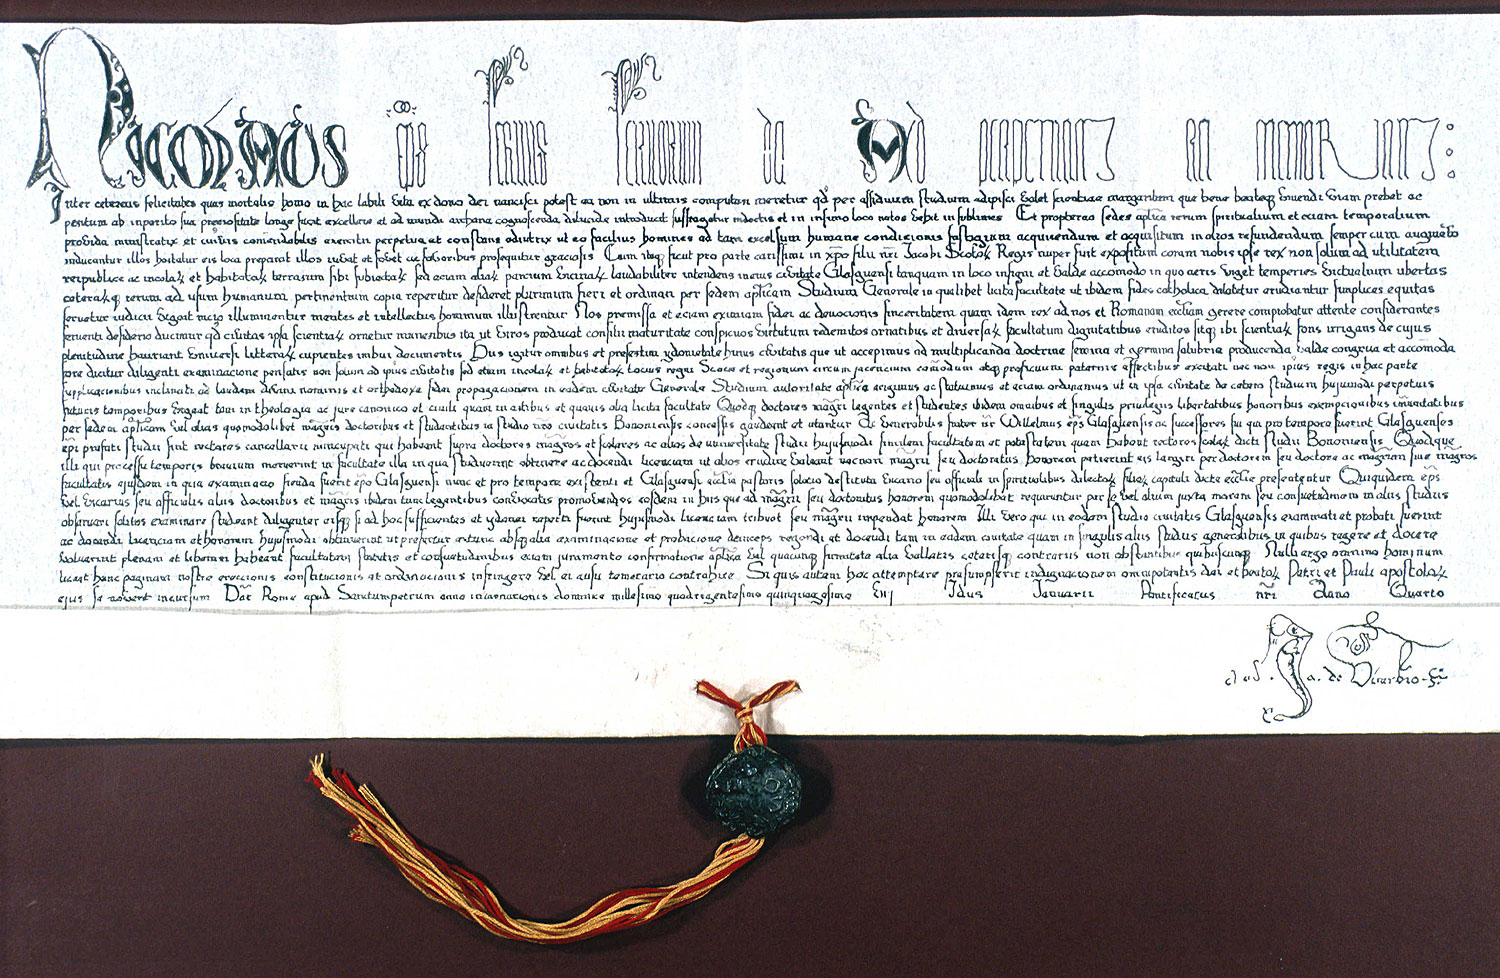 University of Glasgow :: Story :: The Papal Bull